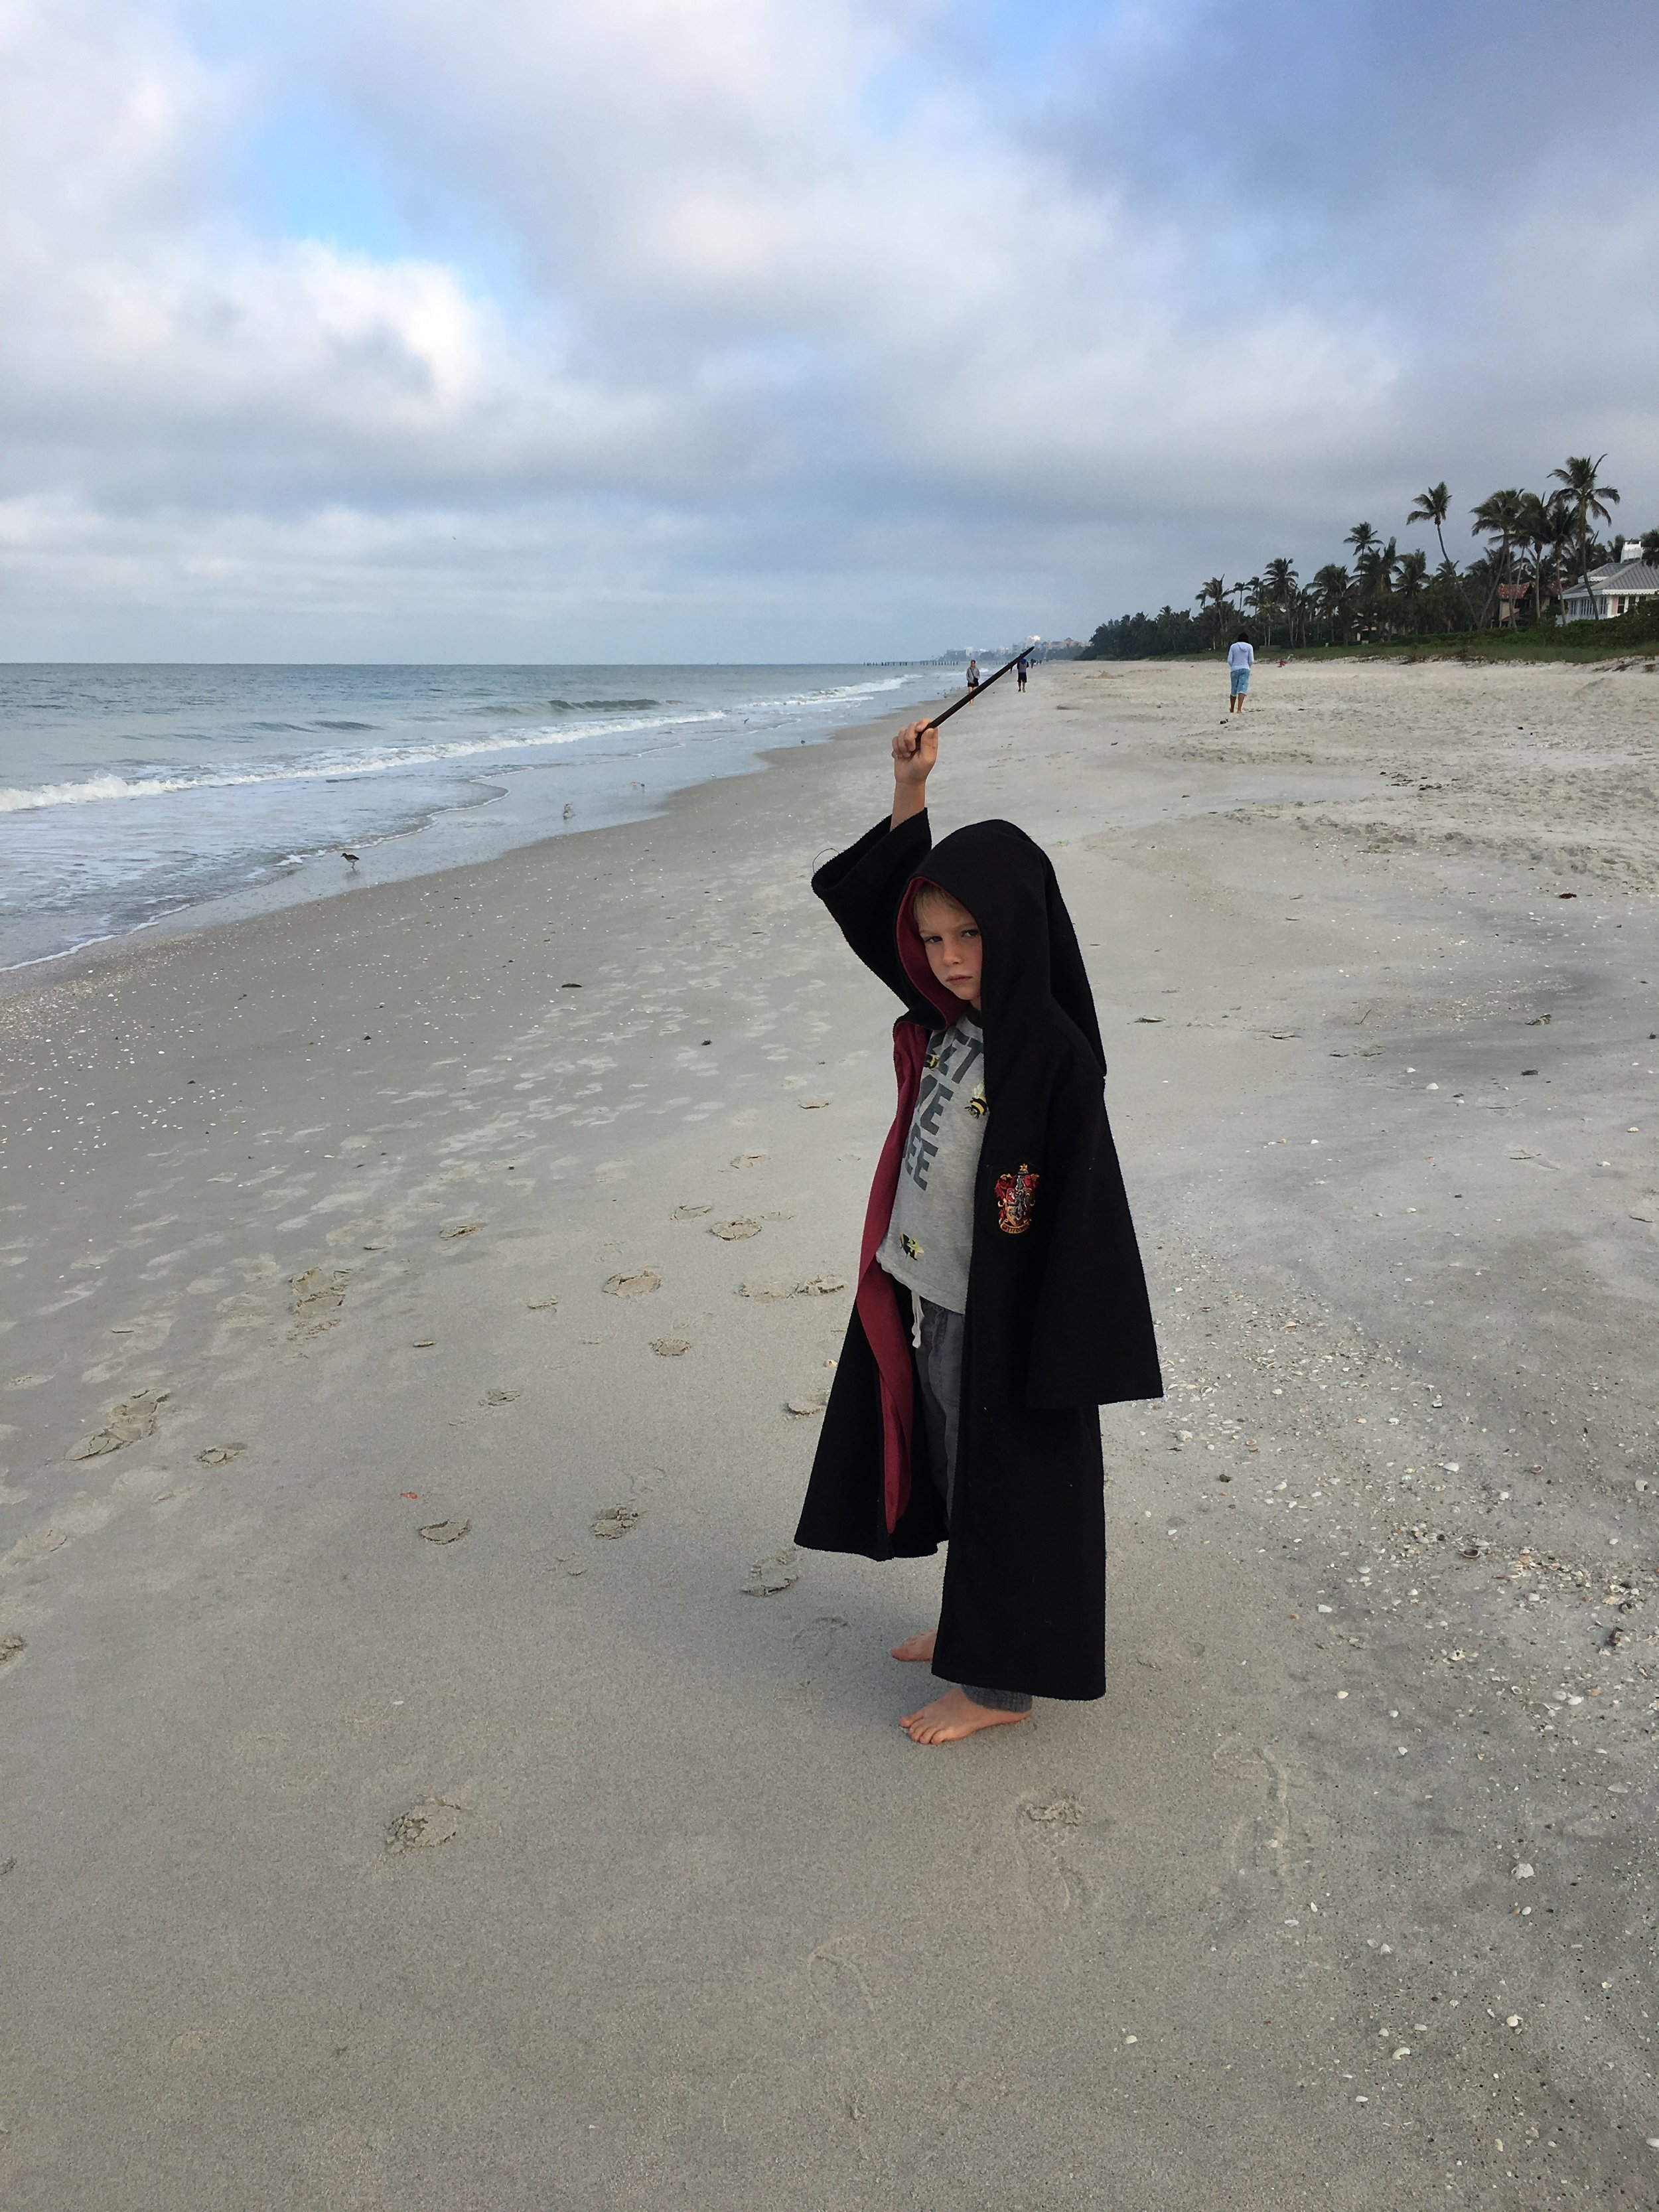 Joah acting out his characters on the beach.